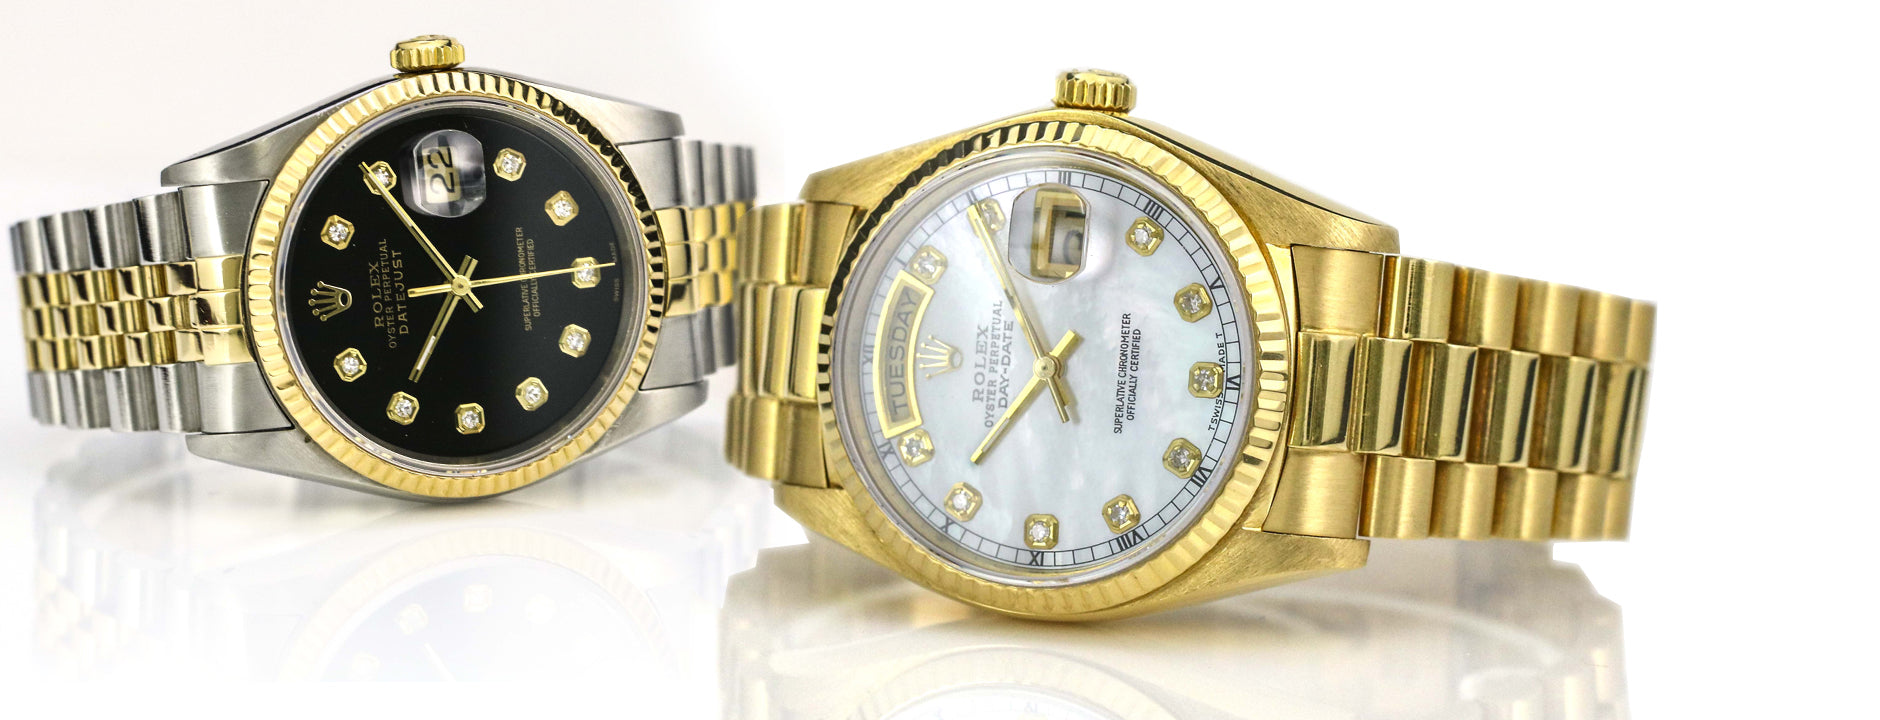 Photograph of two men watches. At front there an 18 karat yellow gold Rolex Day-Date watch for men on classic presidential bracelet with a custom diamond white mother of pearl dial. On the back the Men's two tone DateJust with fluted bezel and diamonds.